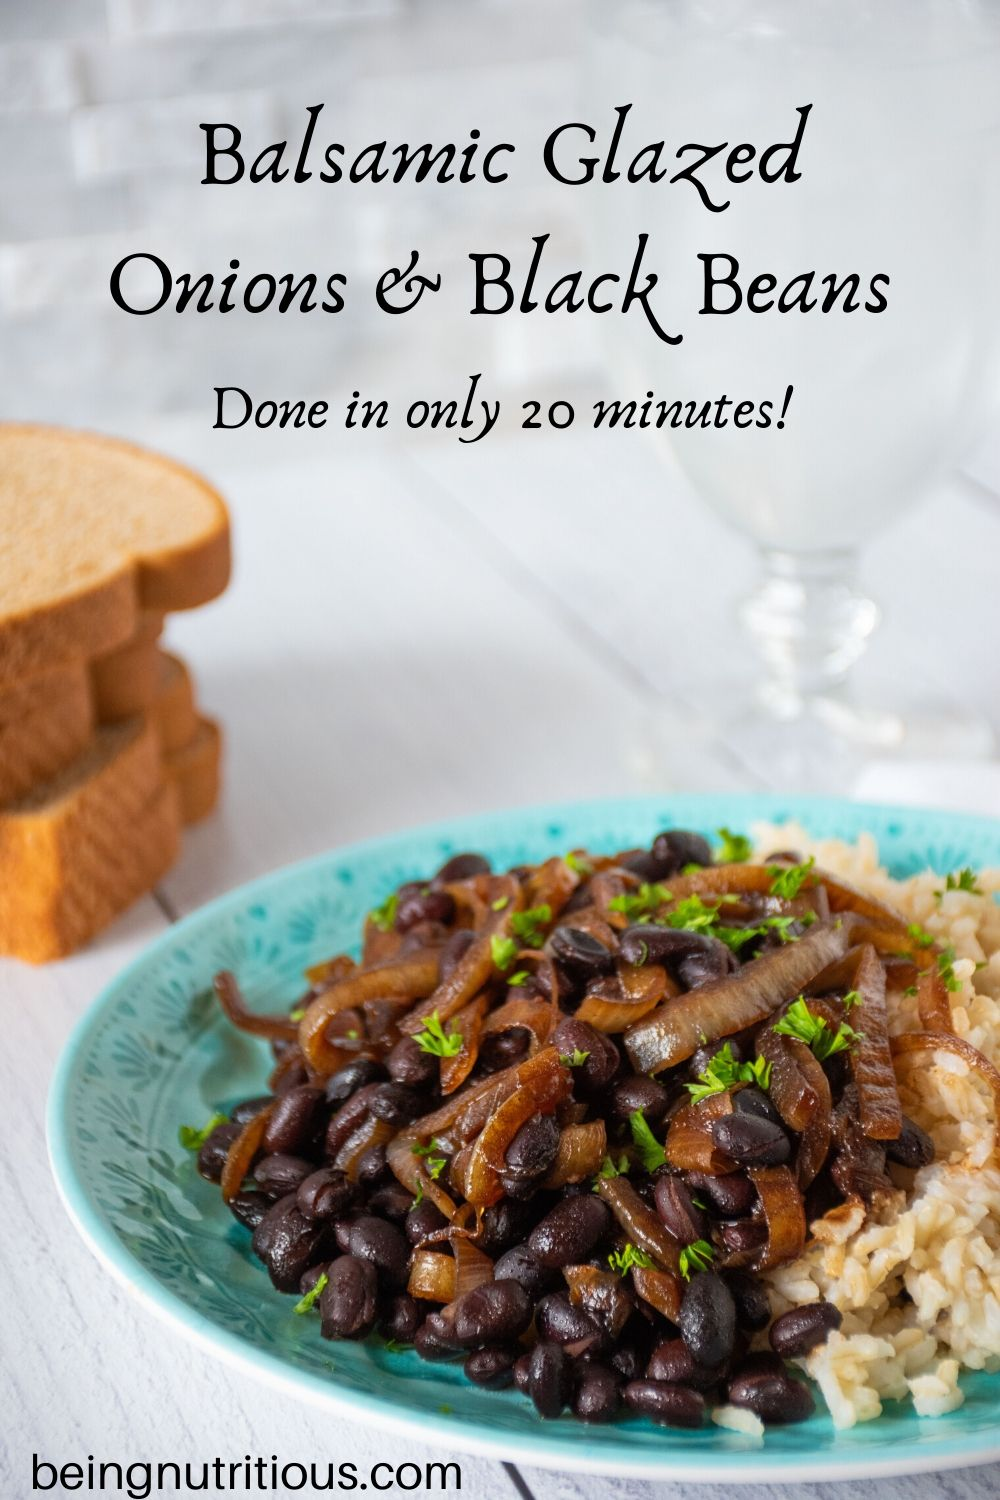 Balsamic glazed onions and black beans pinterest graphic.